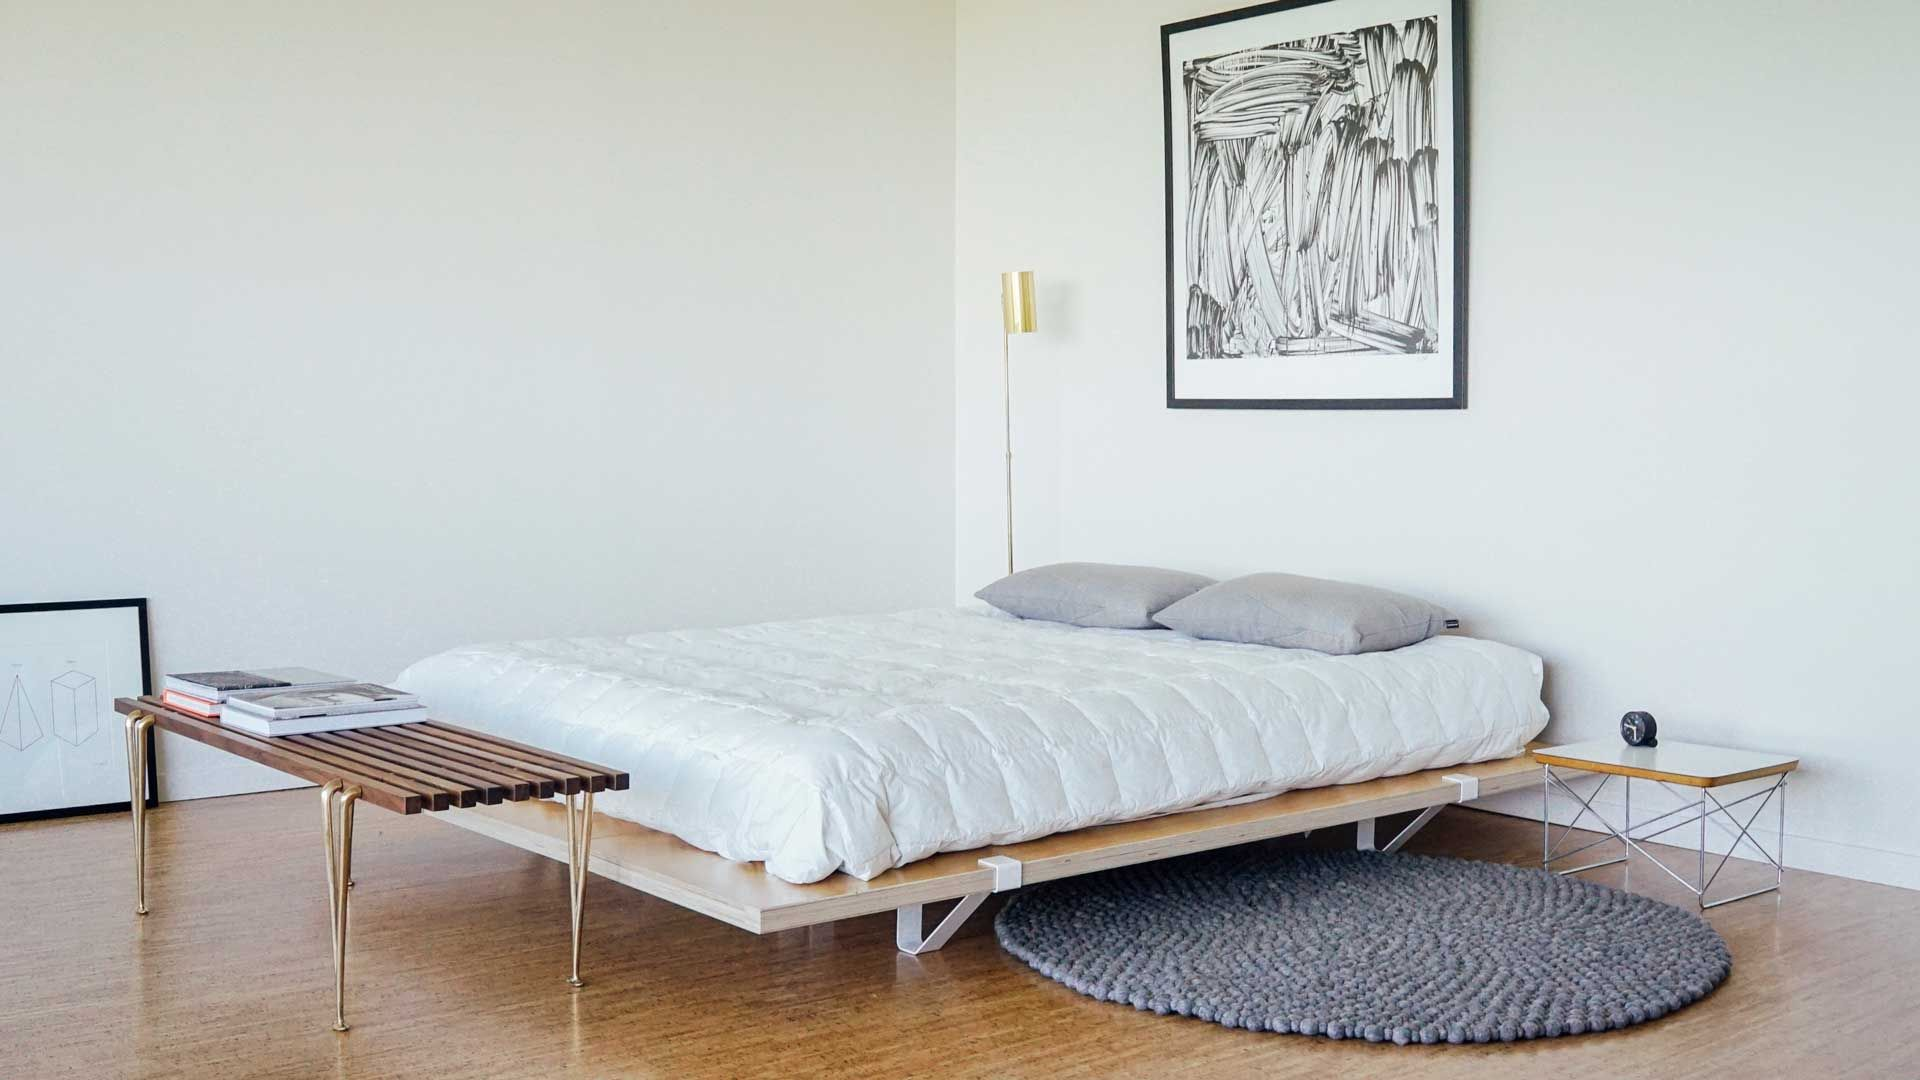 Diy Minimalist Bed Frame Bed Frame Idea For Elijah We Can Probably Diy It For Far Less